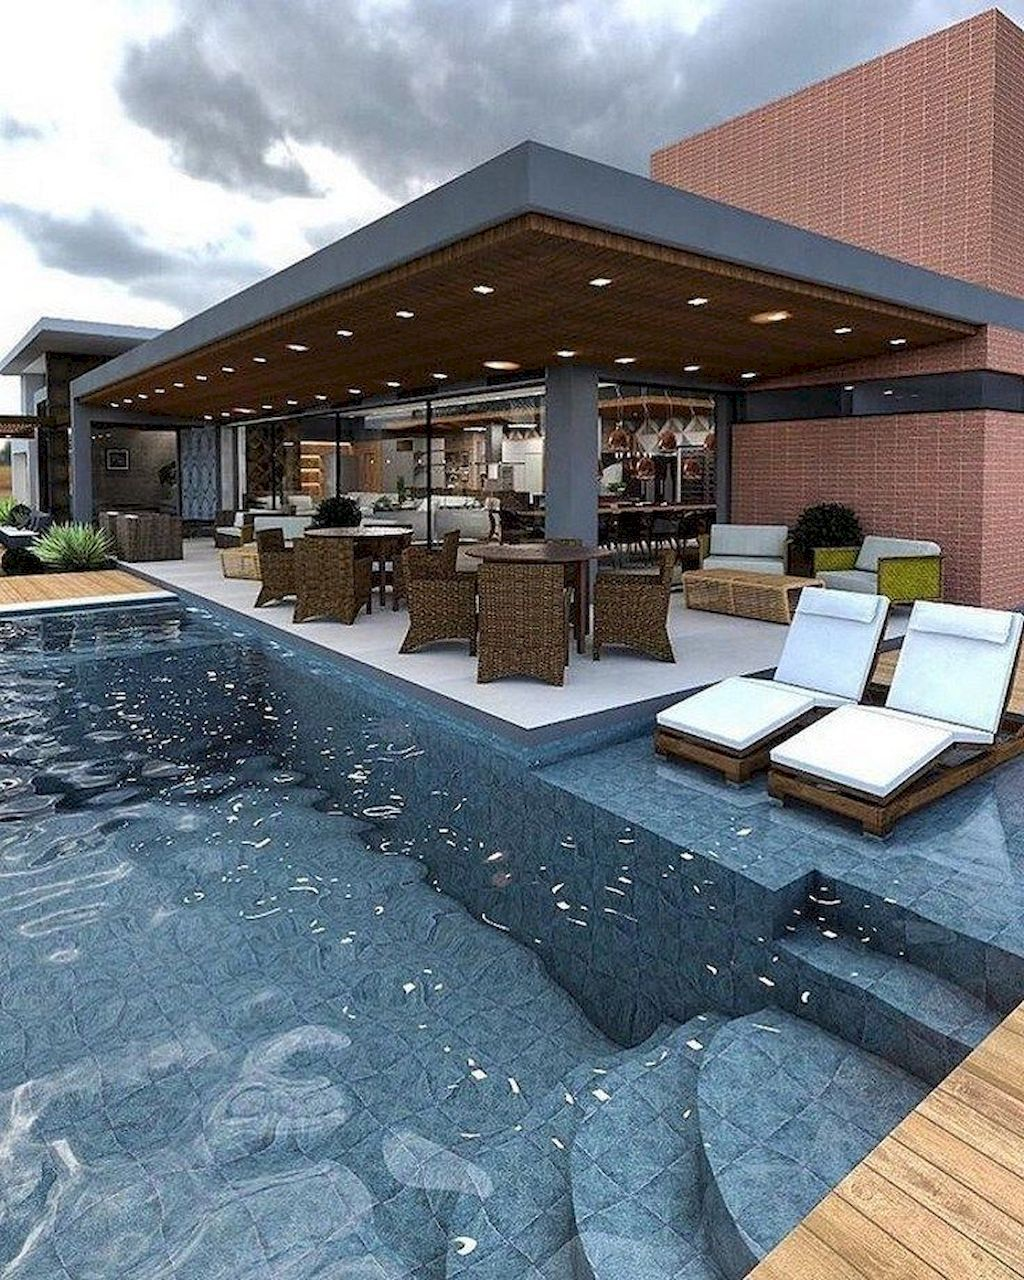 Swimming Pool Designs For Most Enjoyable And Enjoyment Swimming